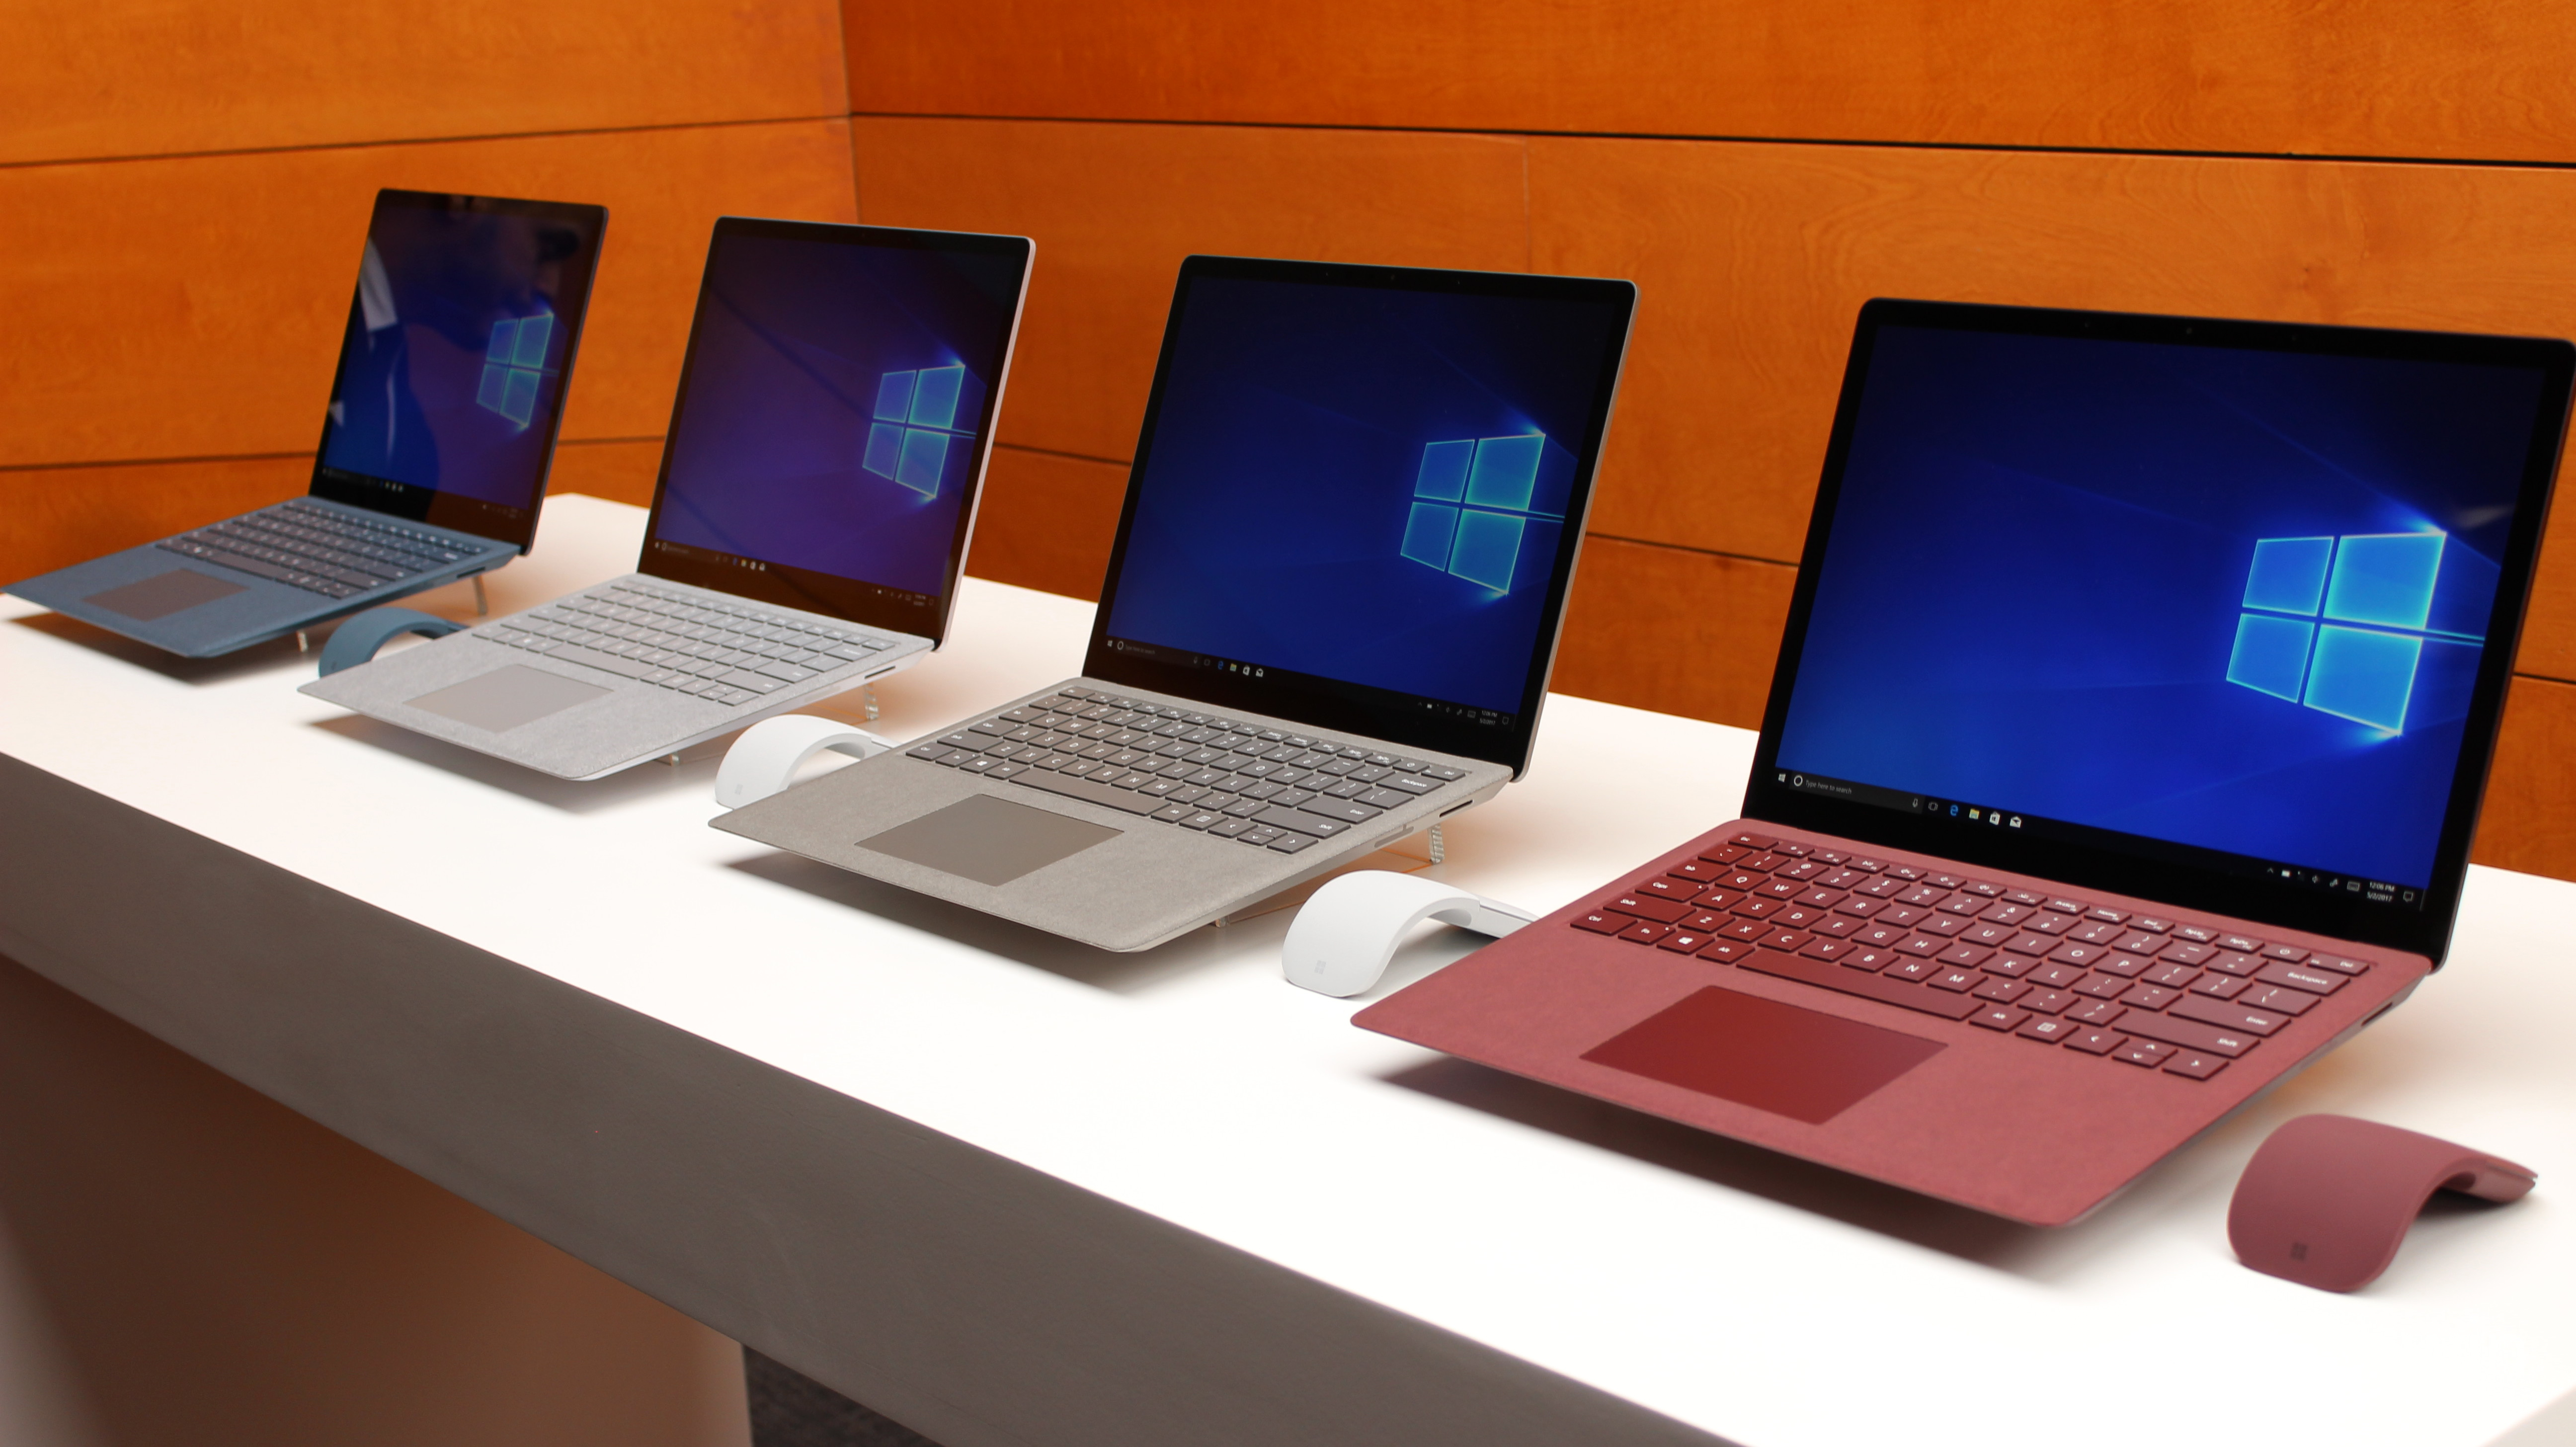 Save up to $200 on select Surface Pro 6